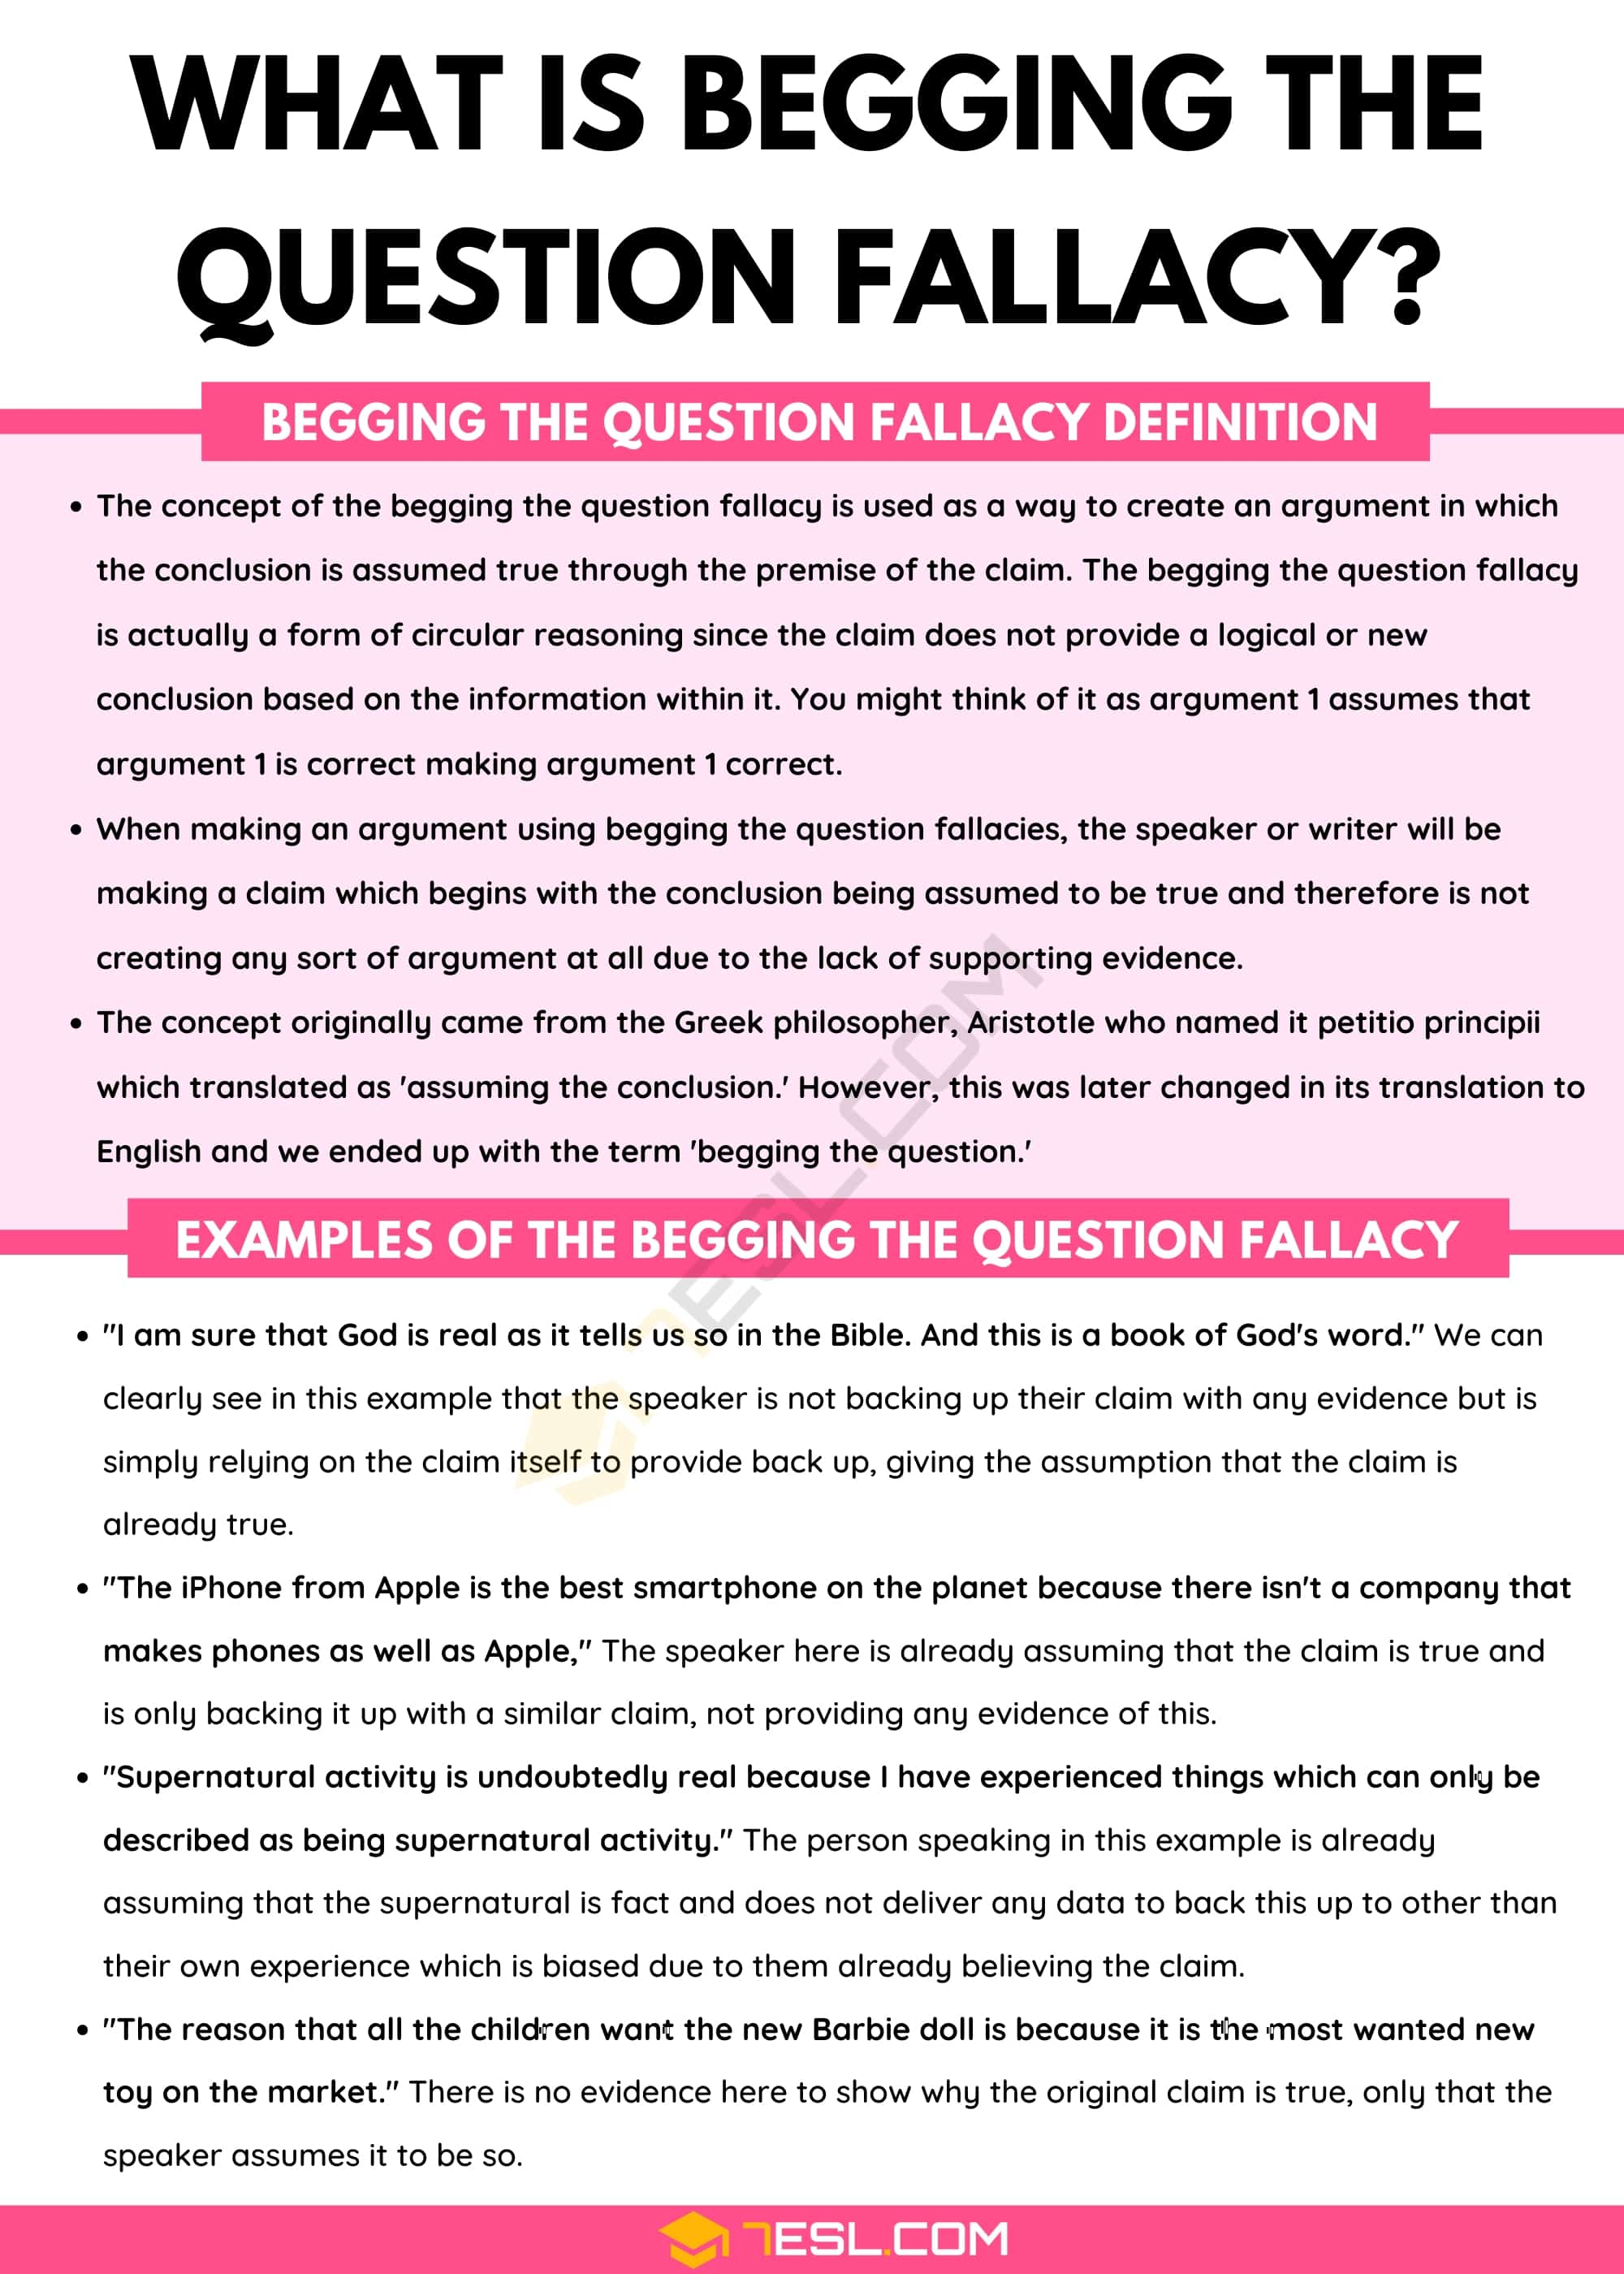 Begging The Question Fallacy: Definition and Useful Examples of Begging The Question Fallacy